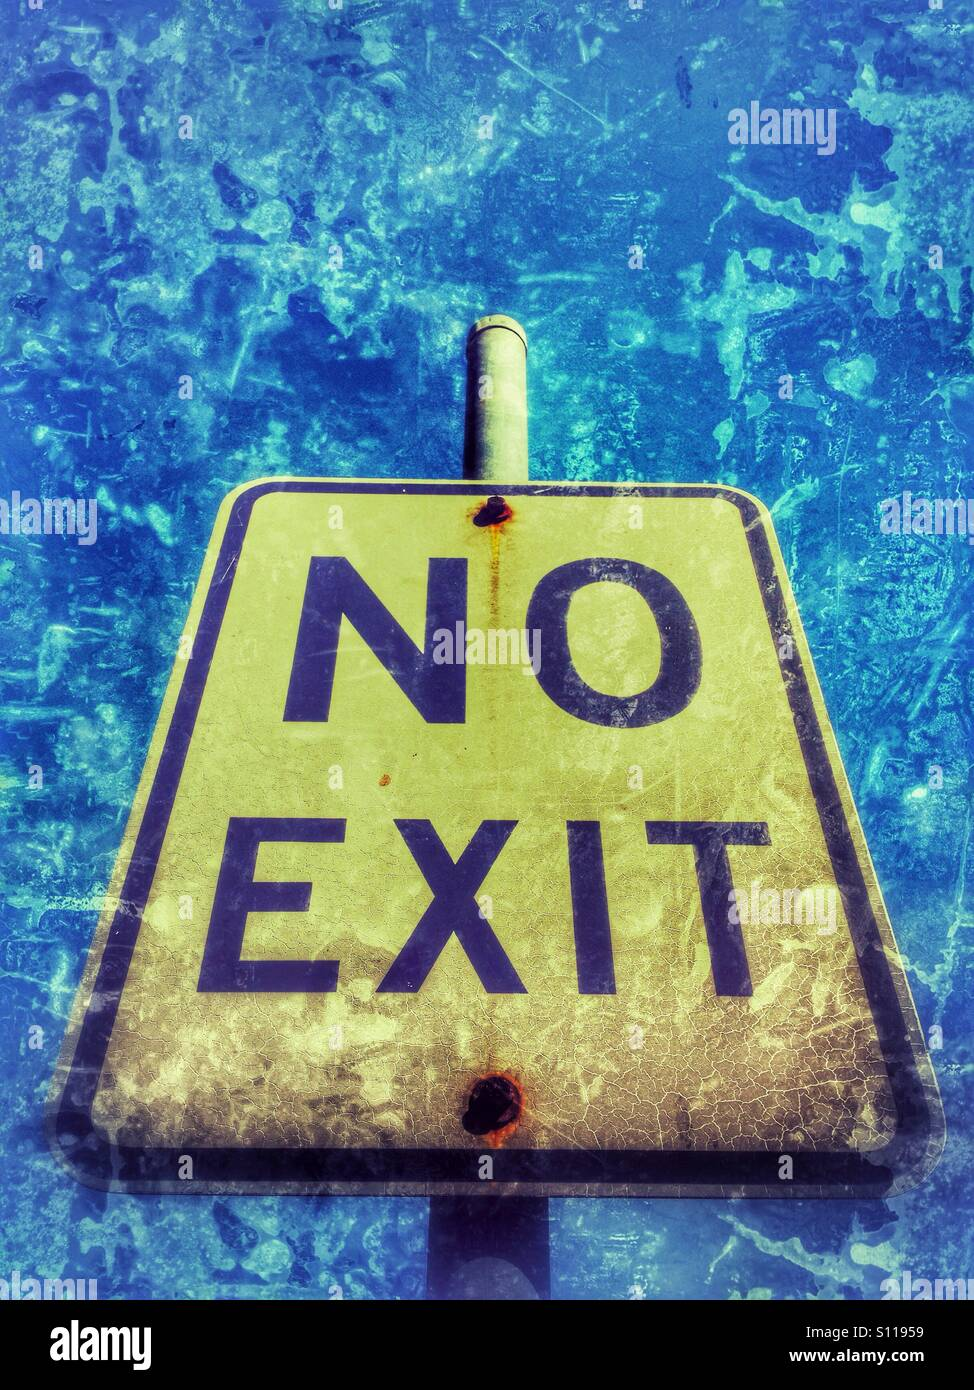 No exit sign. - Stock Image